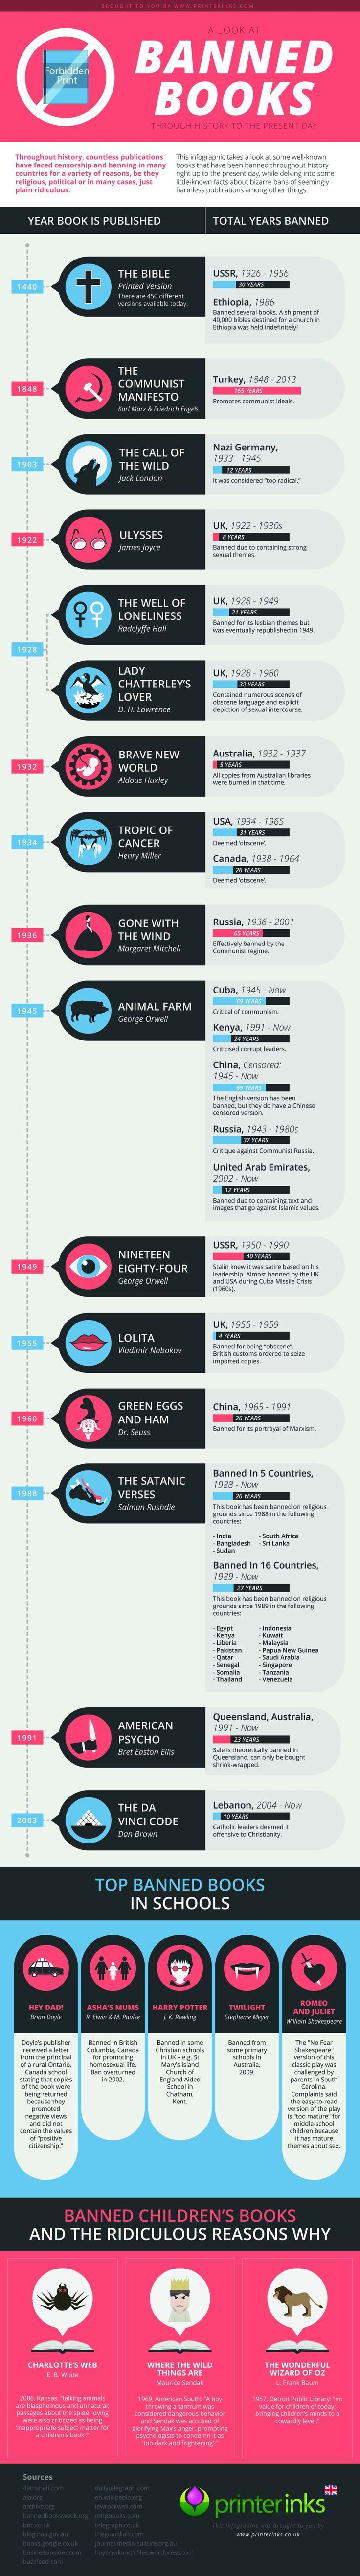 Great infographic about the history of banned books. First, George Orwell, way to go!! Second, Charlotte's Web is both too realistic, and not realistic enough?!? And third, The DaVinci Code is not history, it is fiction, albeit very thought-provoking fiction.